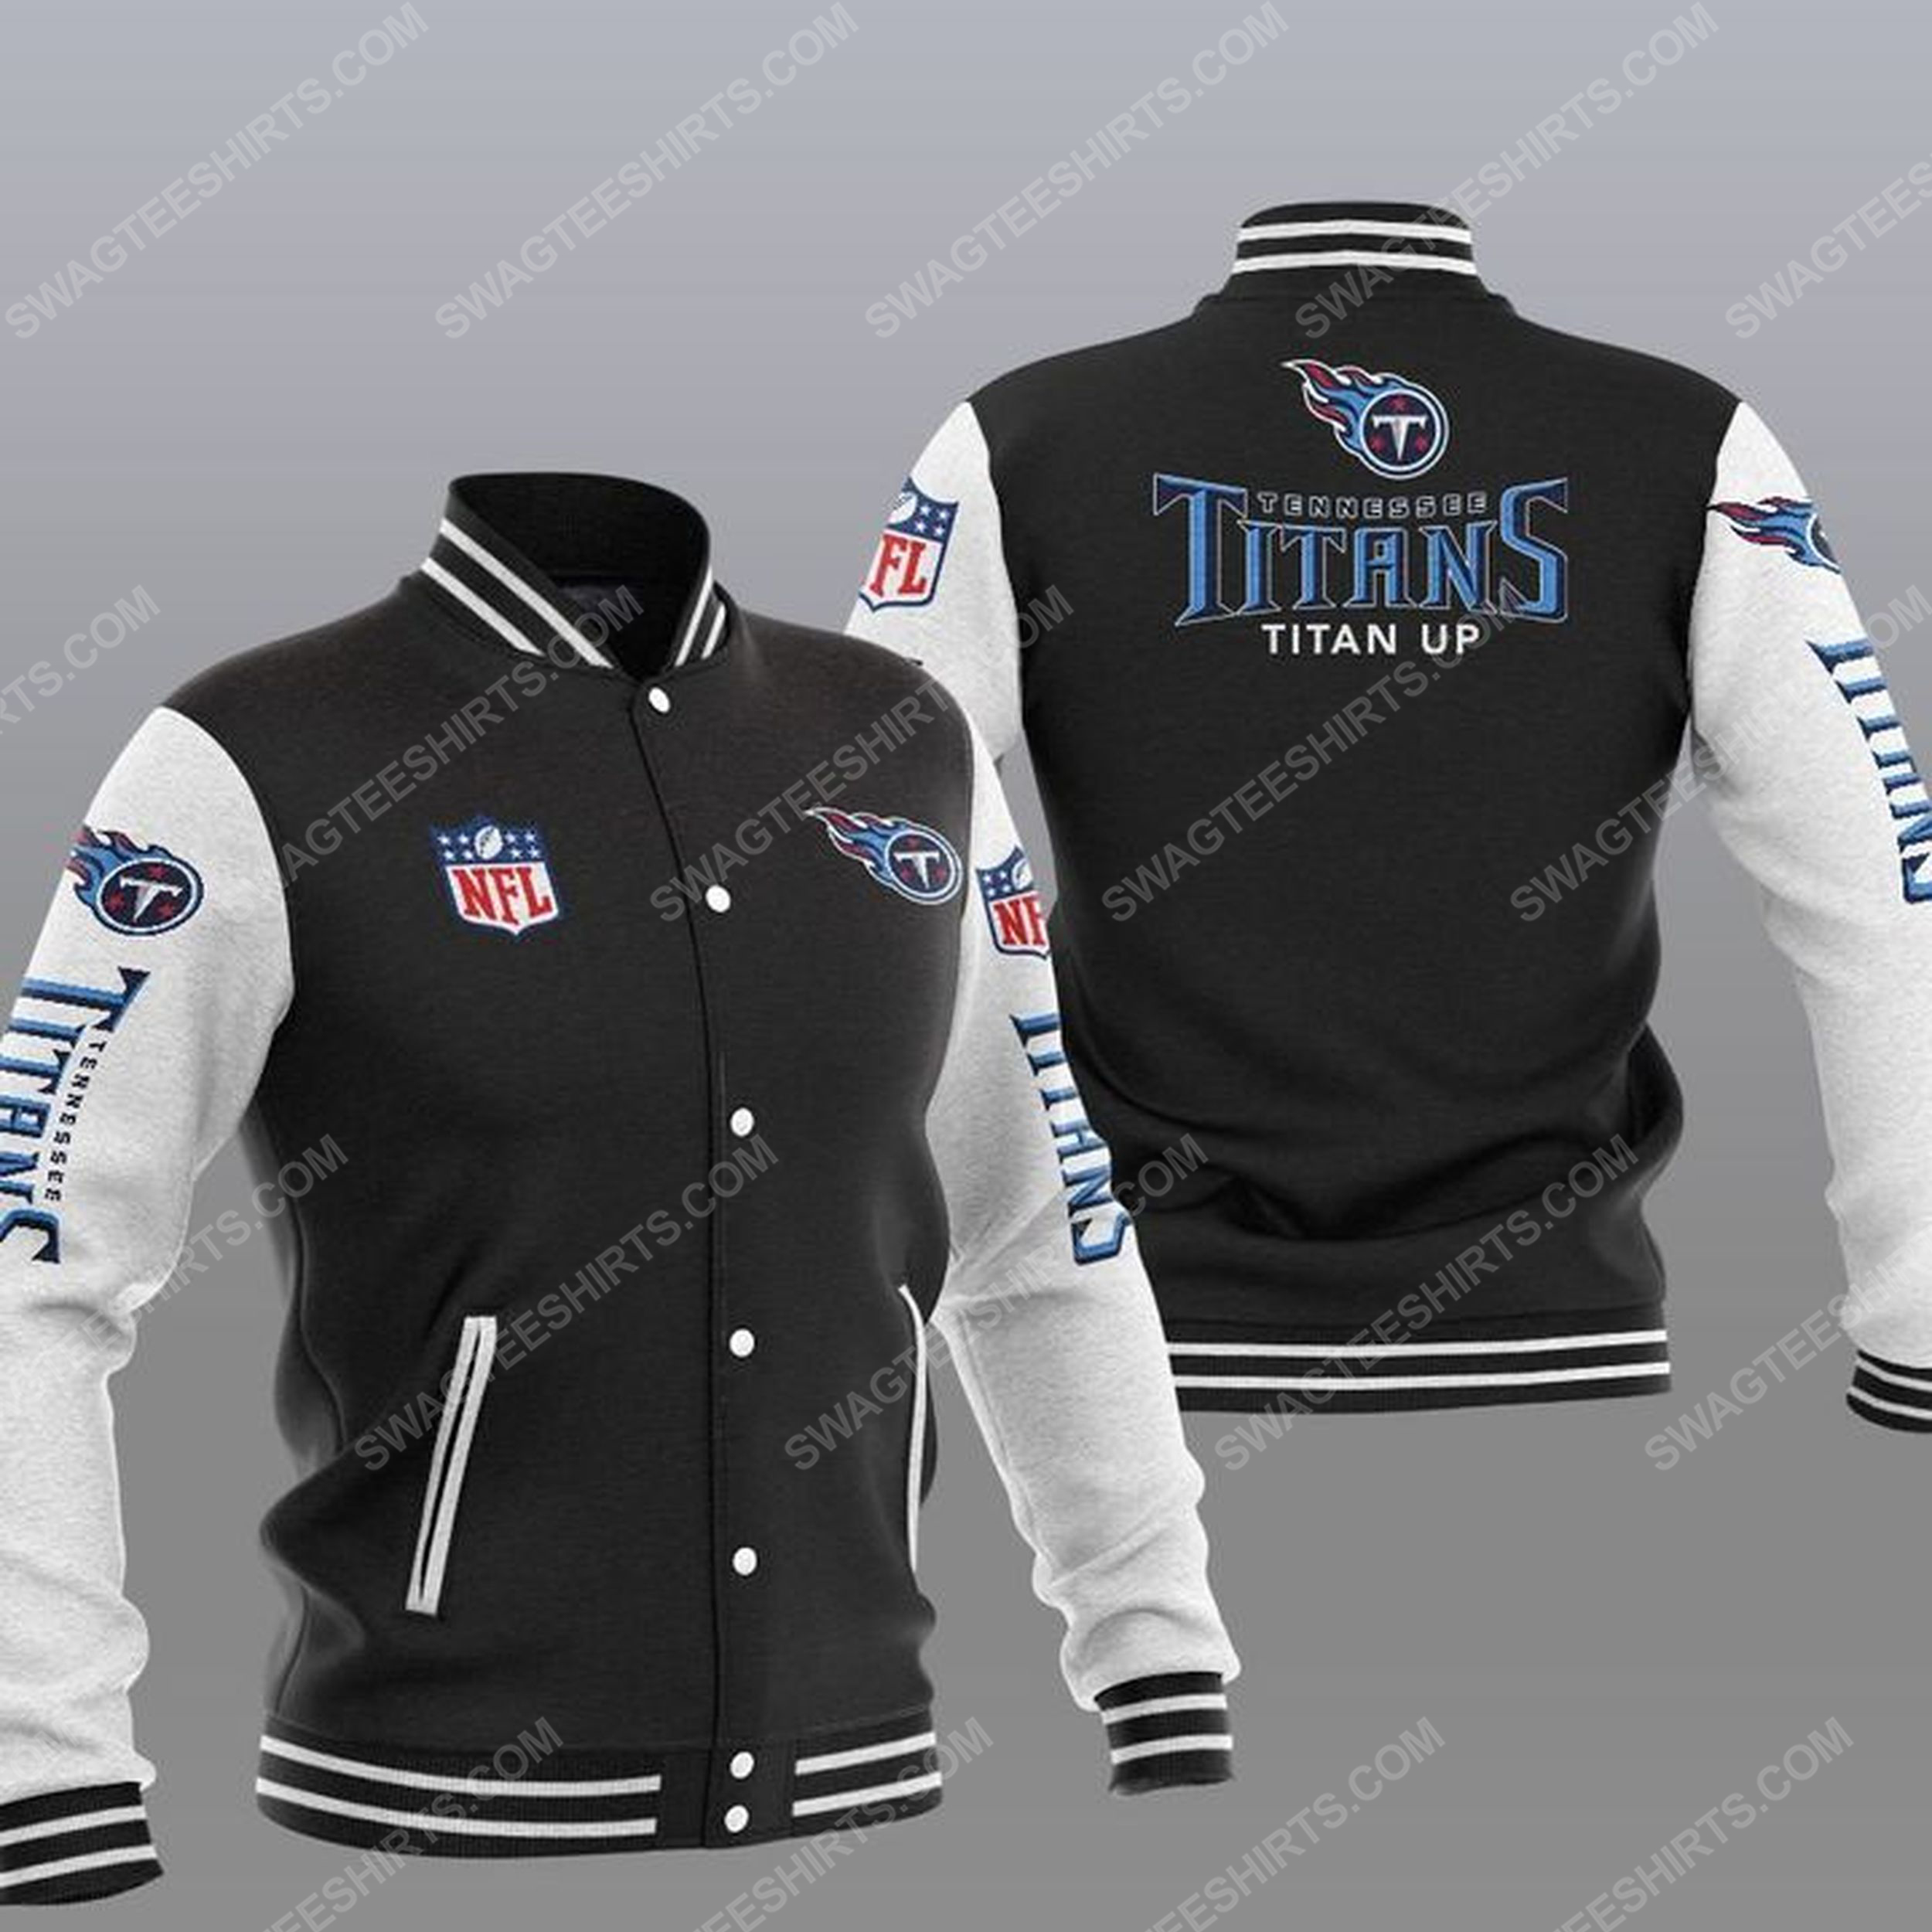 Tennessee titans titan up all over print shirt